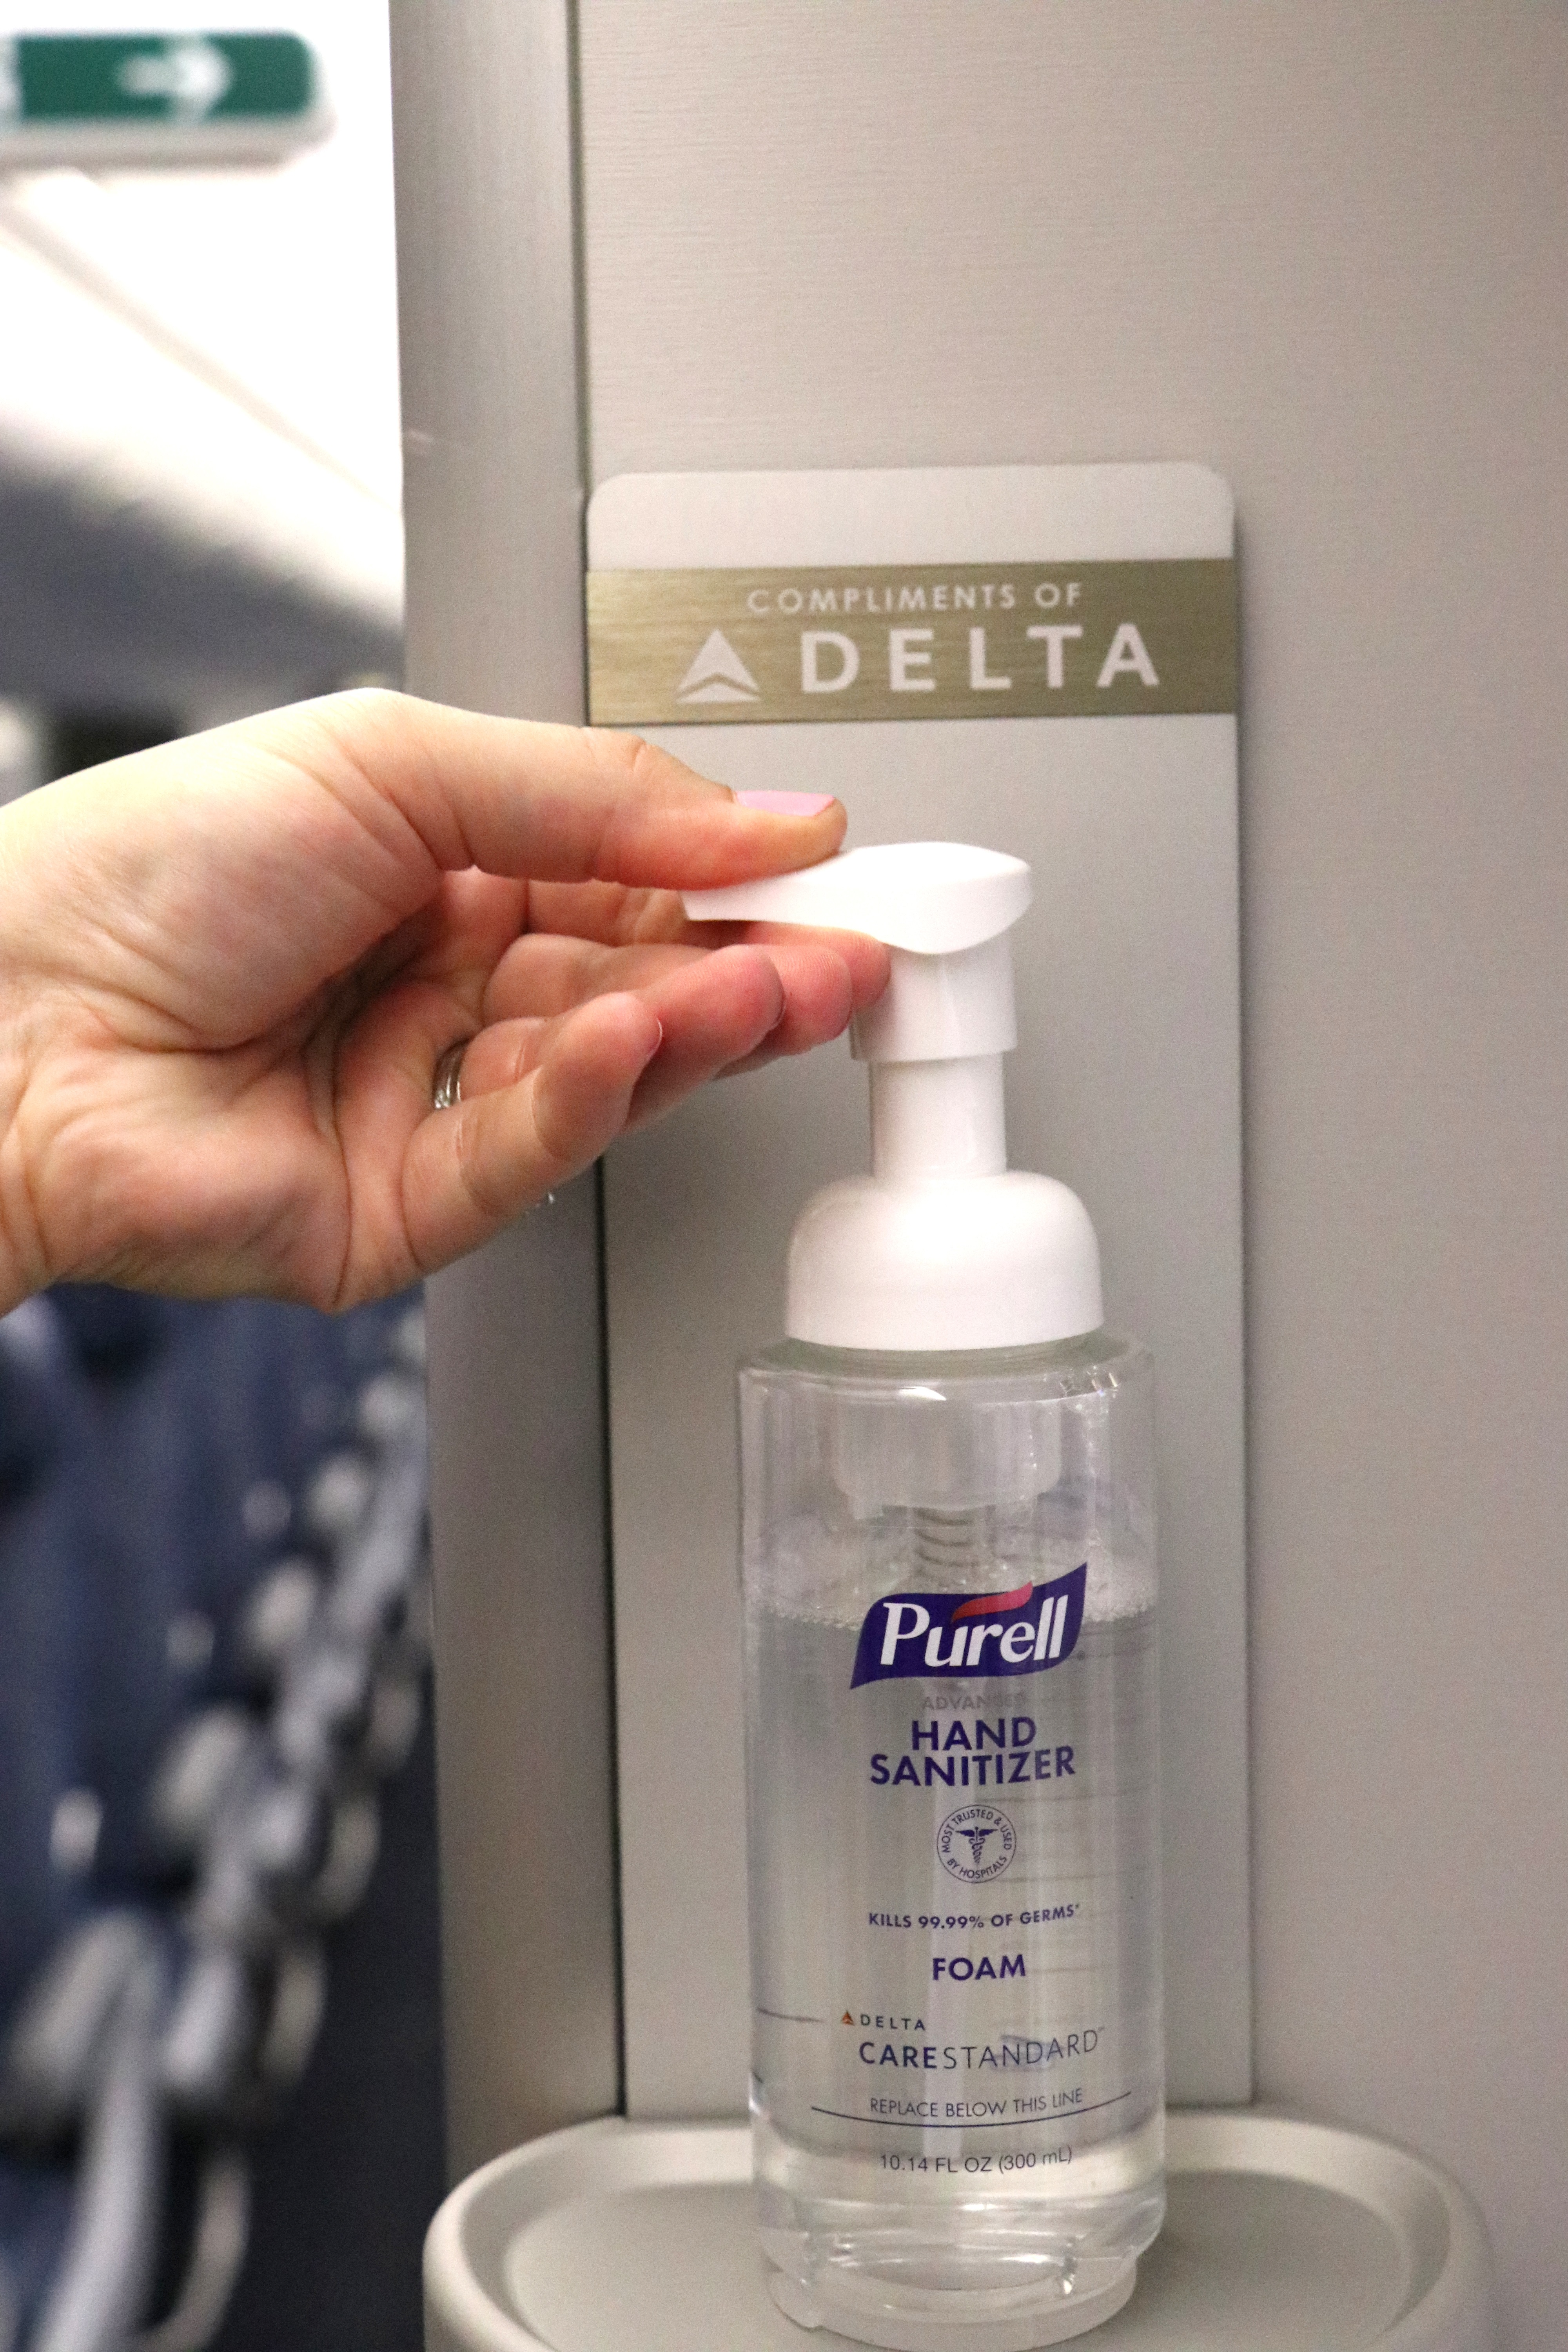 Purell on Delta aircraft